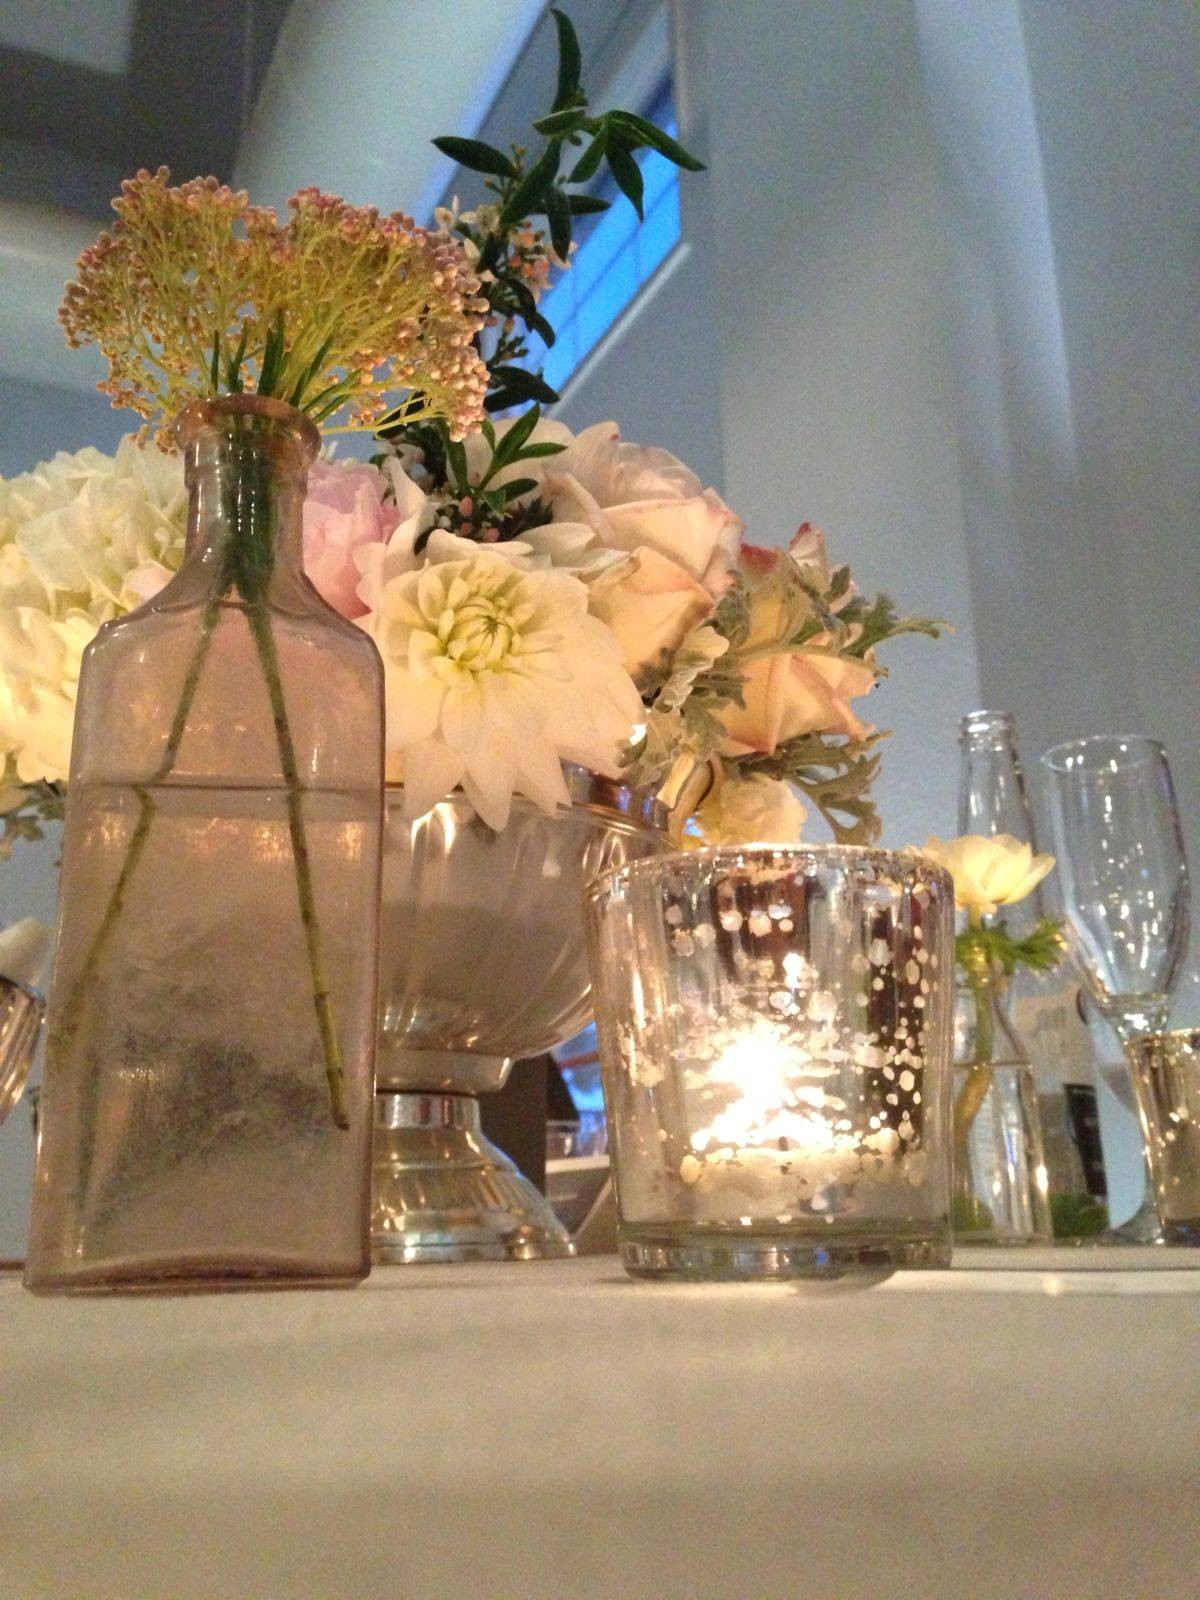 small silver bud vases of wedding table decoration ideas pinterest new wedding table decor throughout wedding table decoration ideas pinterest new wedding table decor mercury votive candles and bud vases silver